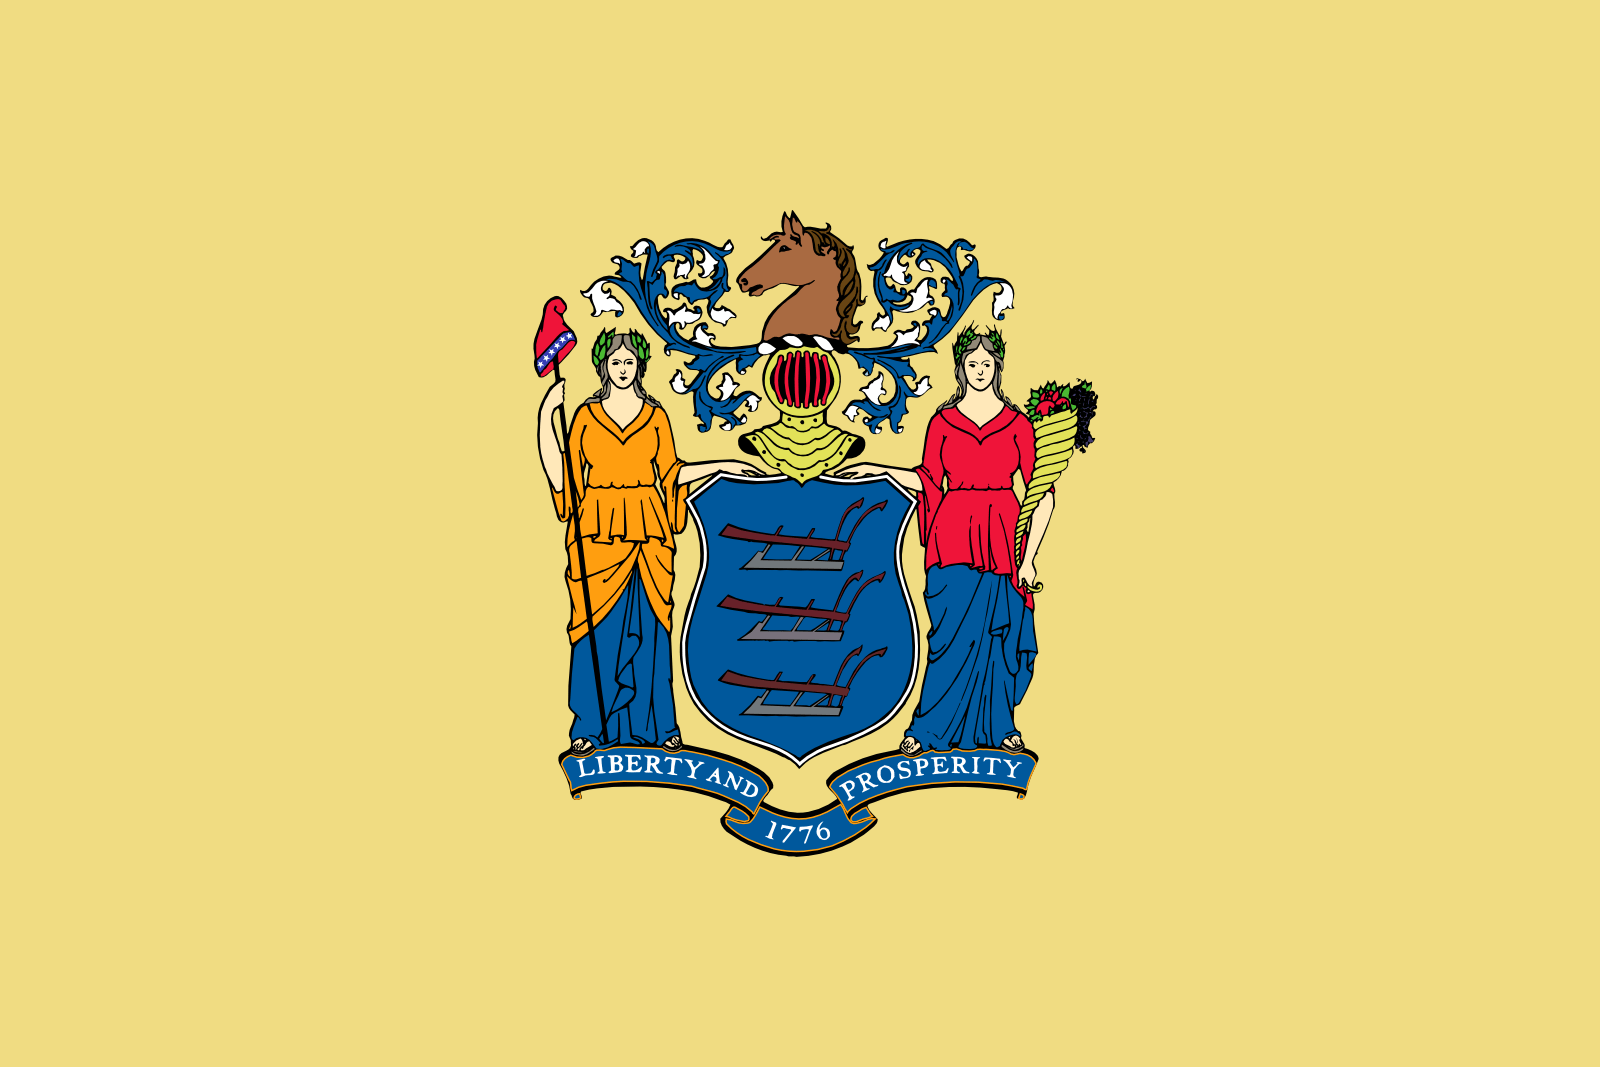 Who is the patron saint of New Jersey?